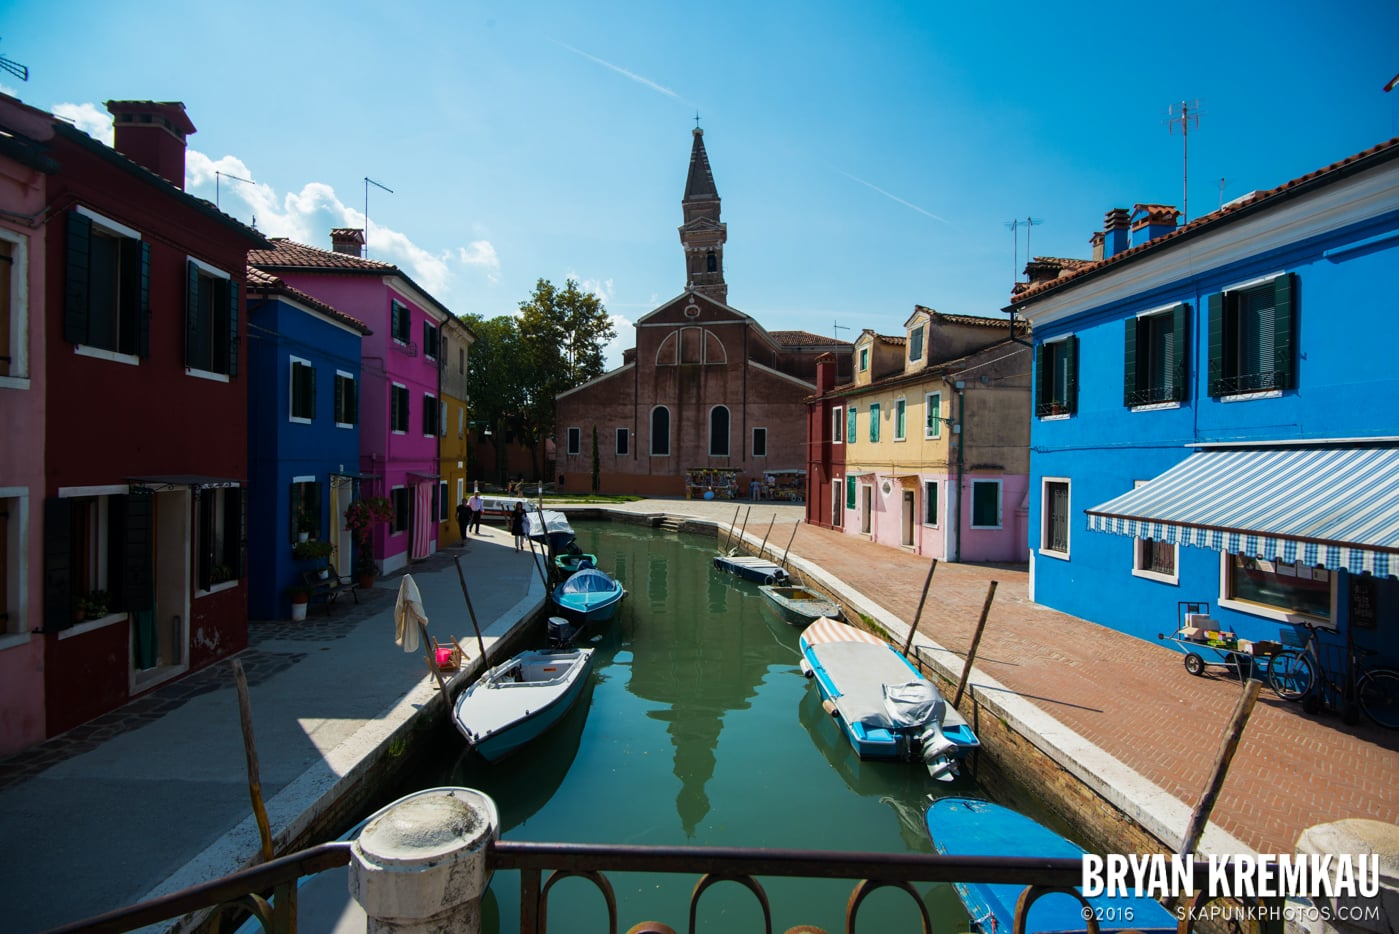 Italy Vacation - Day 6: Murano, Burano, Venice - 9.14.13 (50)